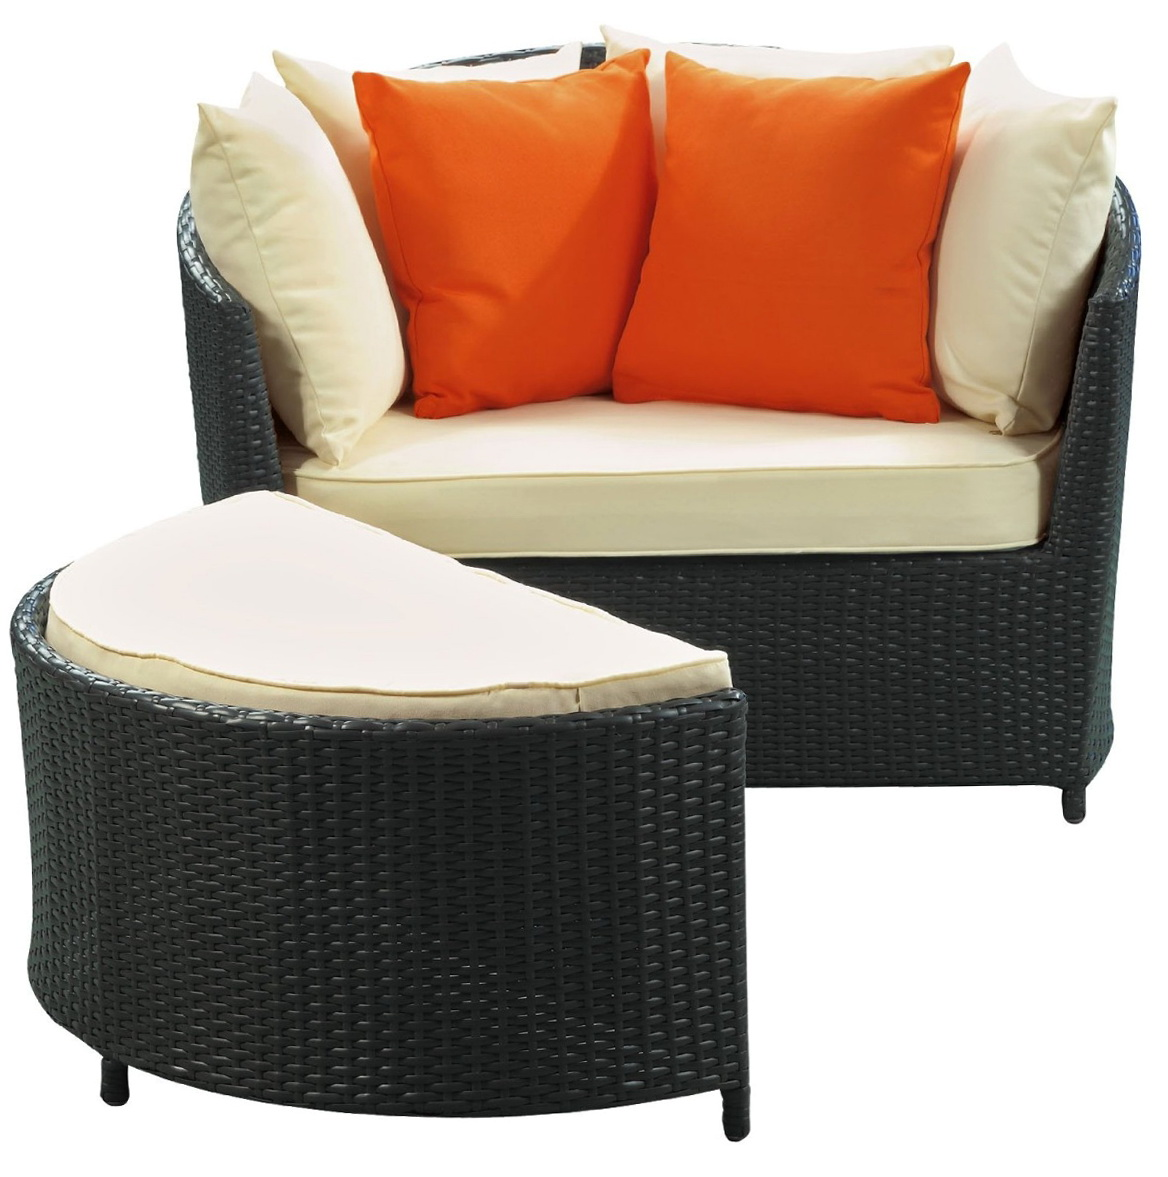 Cushions For Patio Furniture Cheap Home Design Ideas